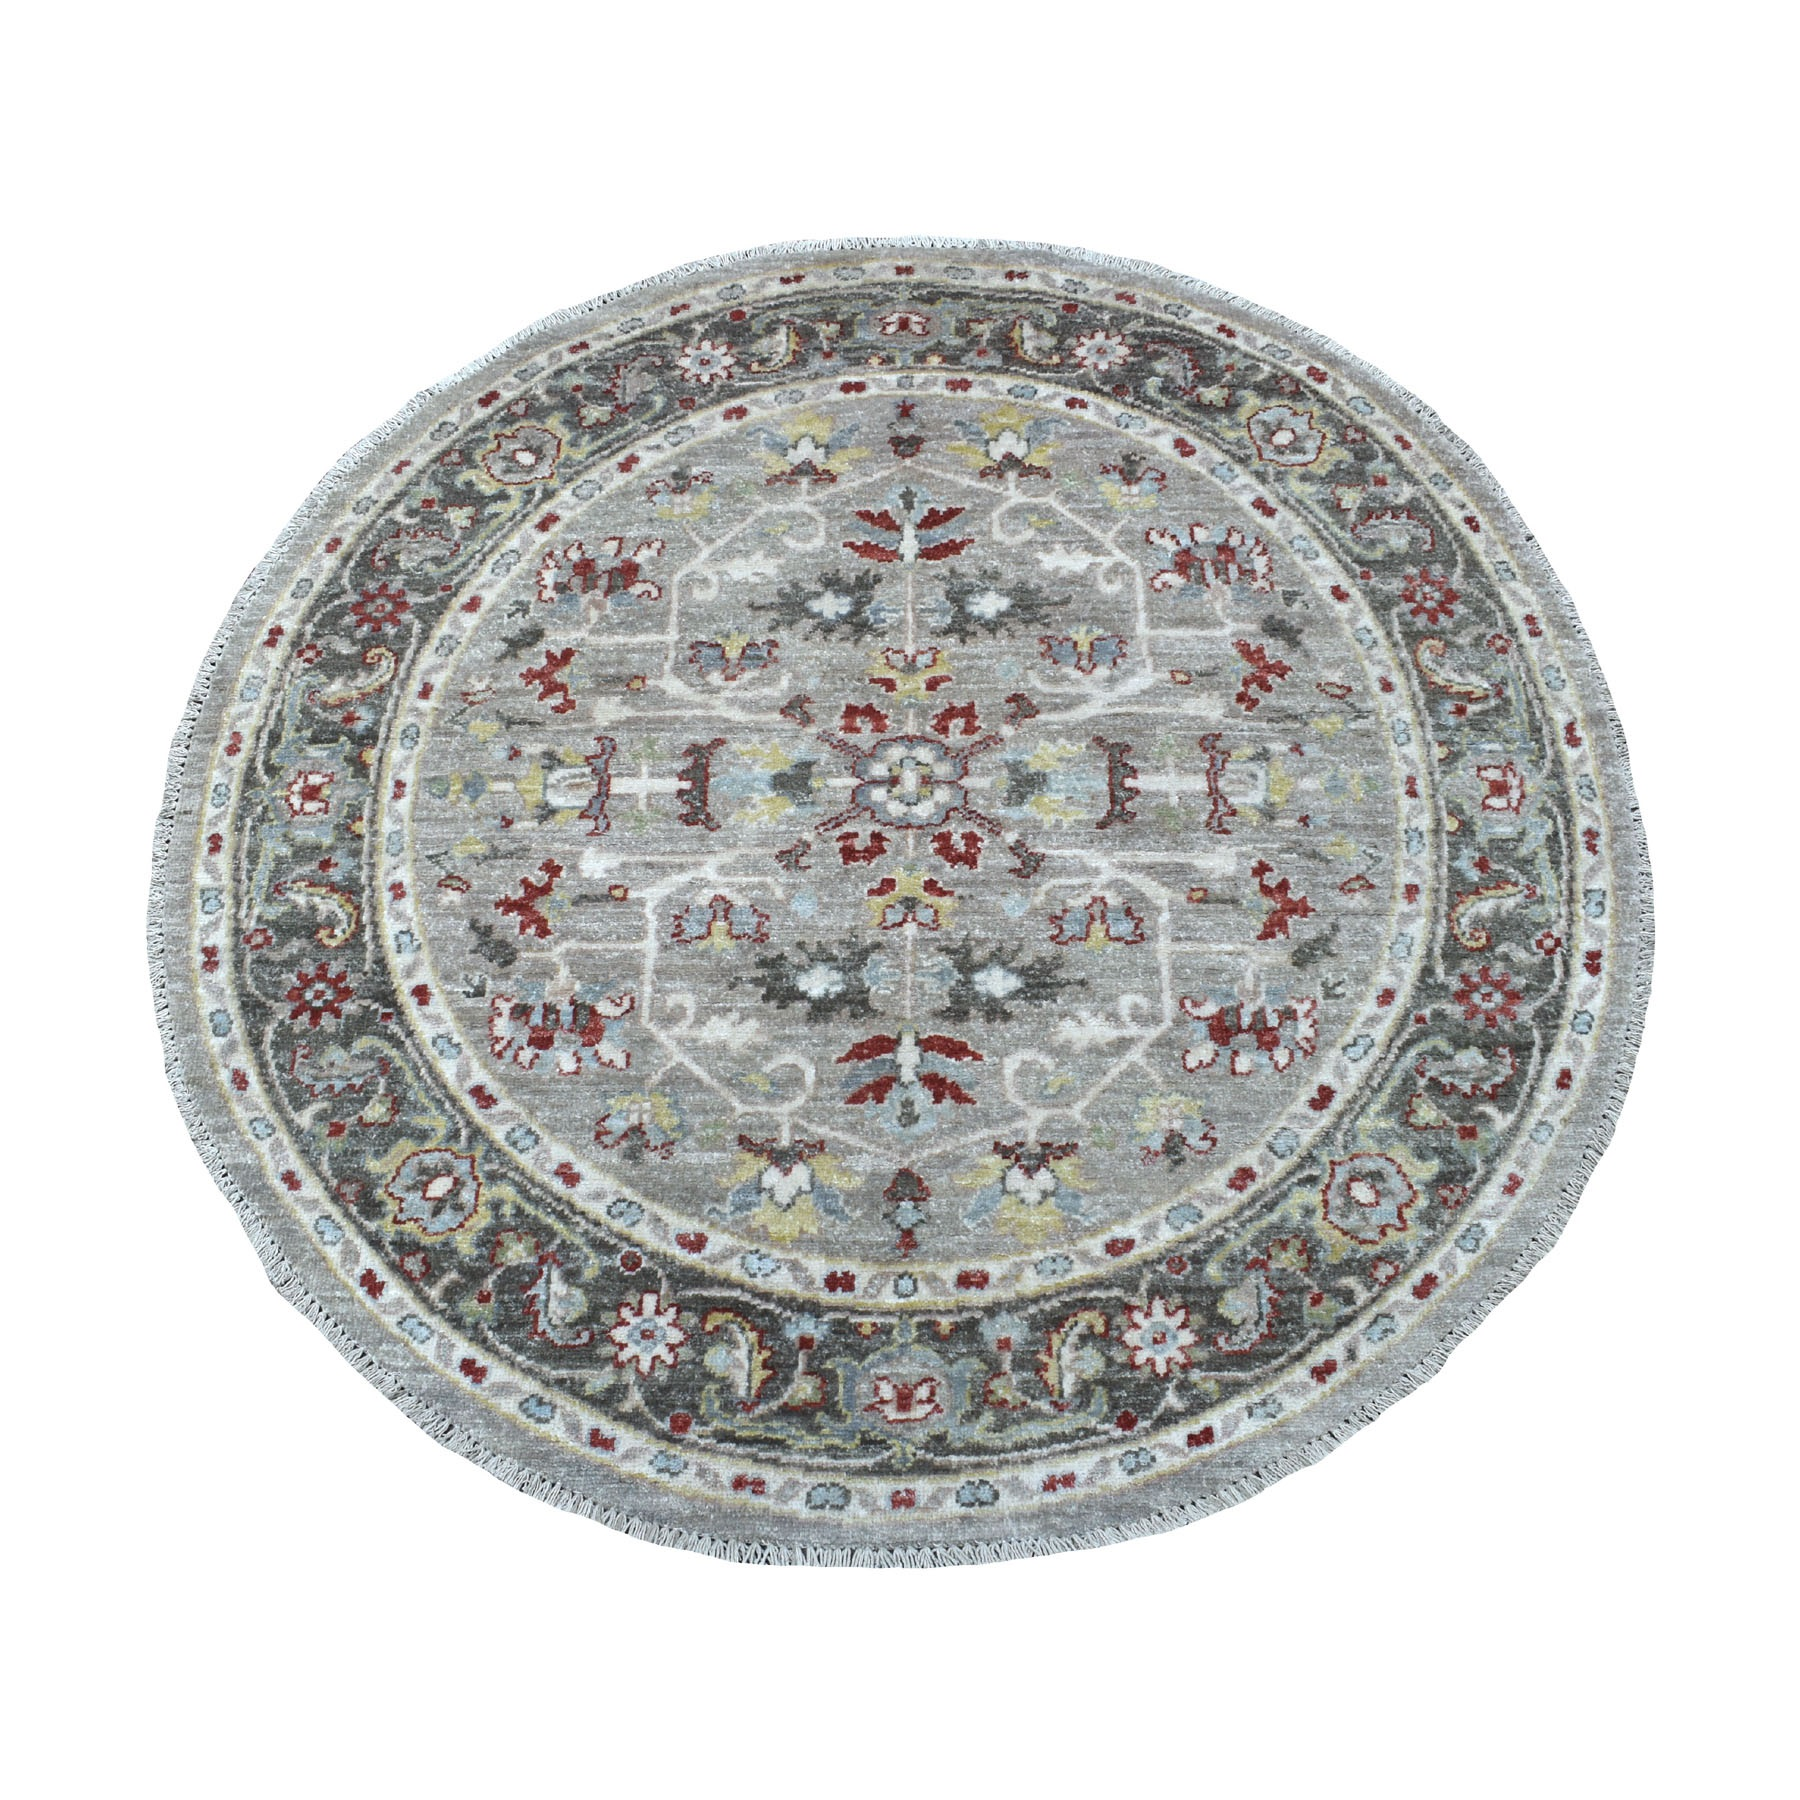 4'x4' Light Gray Peshawar With Heriz Design Shiny Wool Round Hand Knotted Oriental Rug